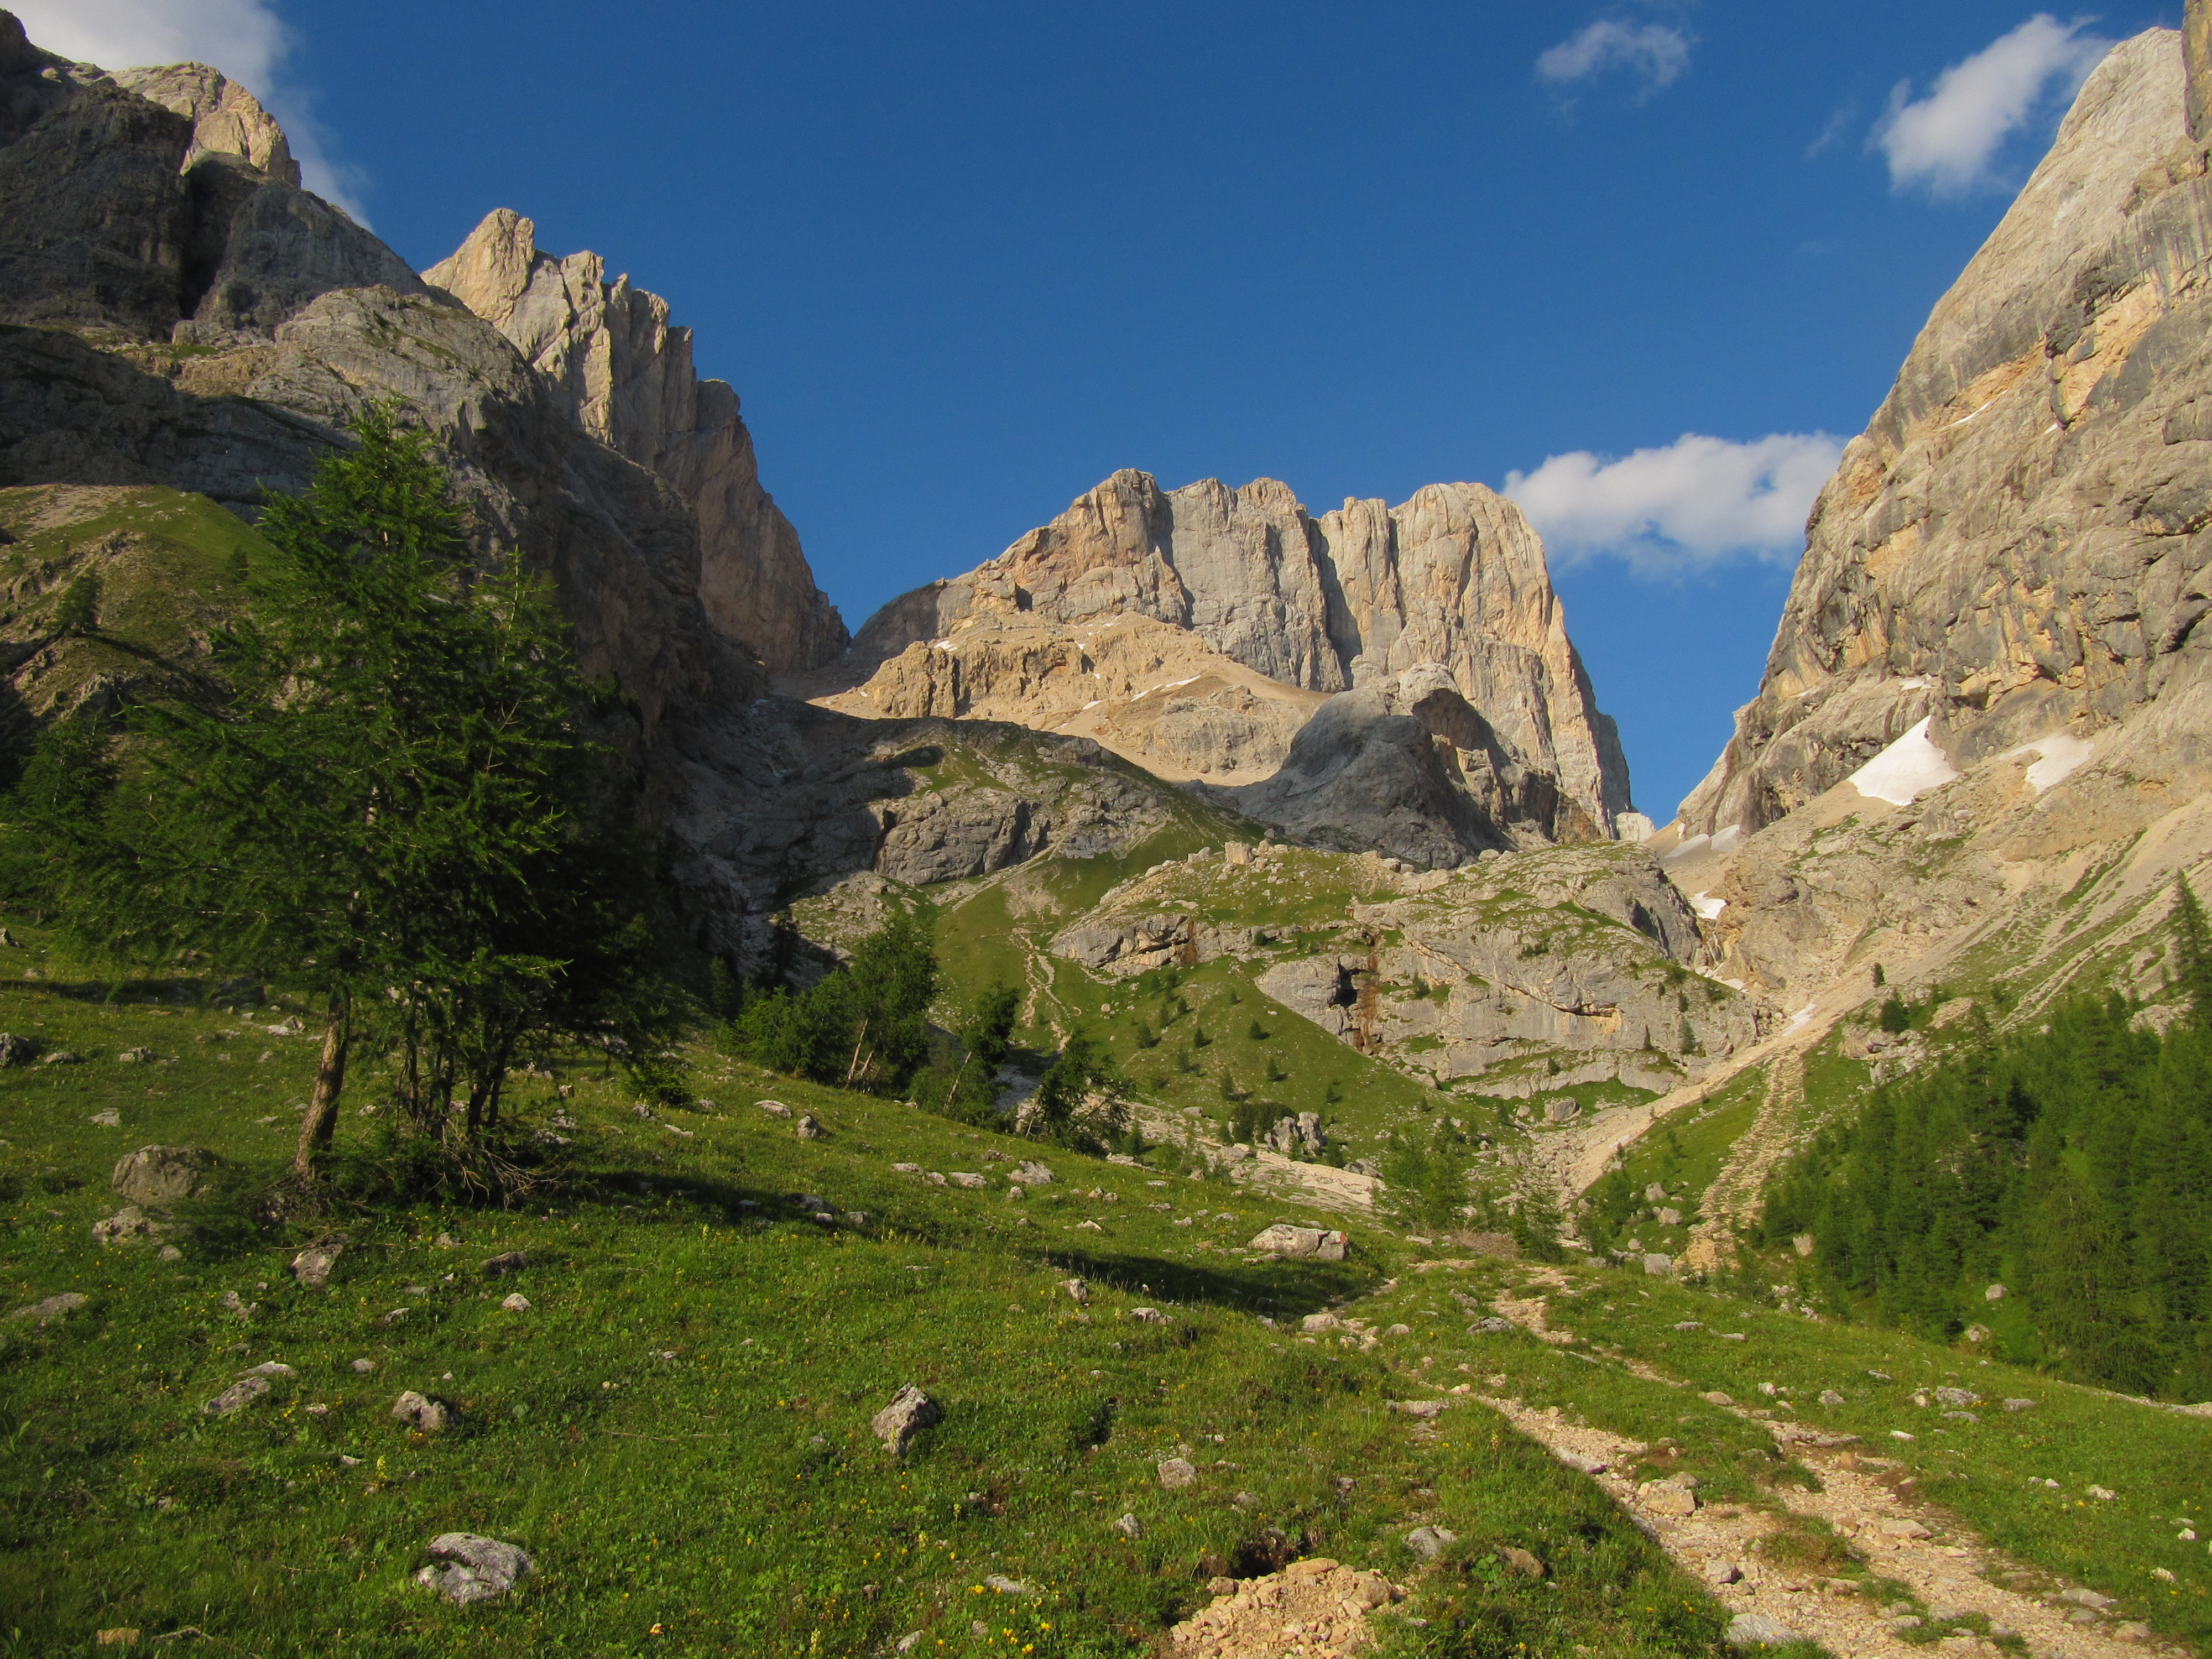 Marmolada South Wall : Photos, Diagrams & Topos : SummitPost.